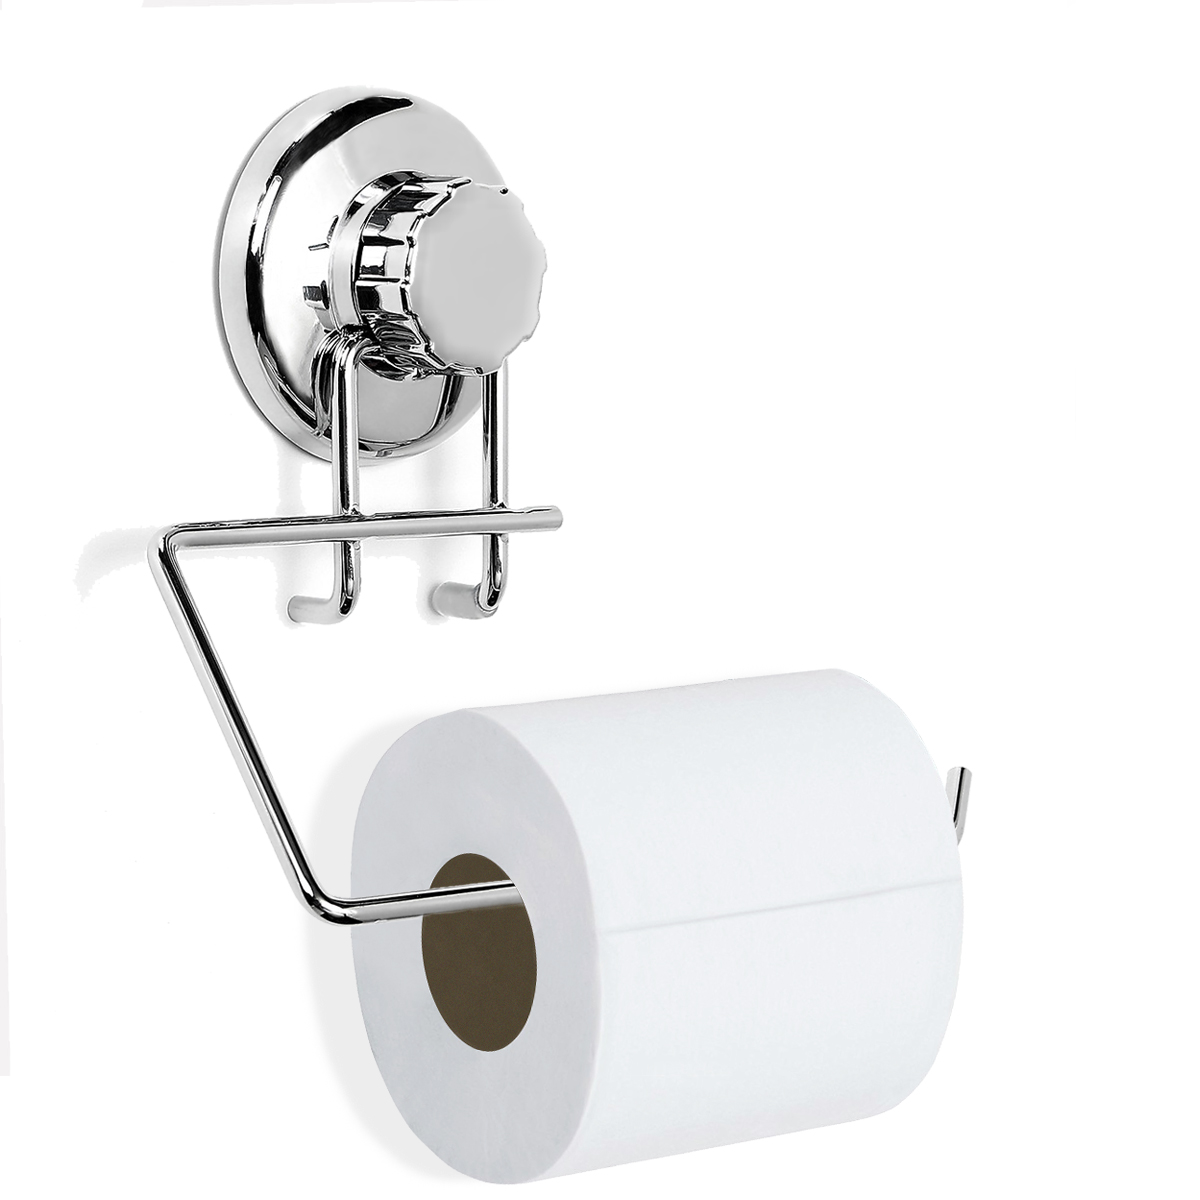 Powerful No-Drilling Vacuum Suction Cup Toilet Paper Holder Toilet Roll Holder for Bathroom Kitchen